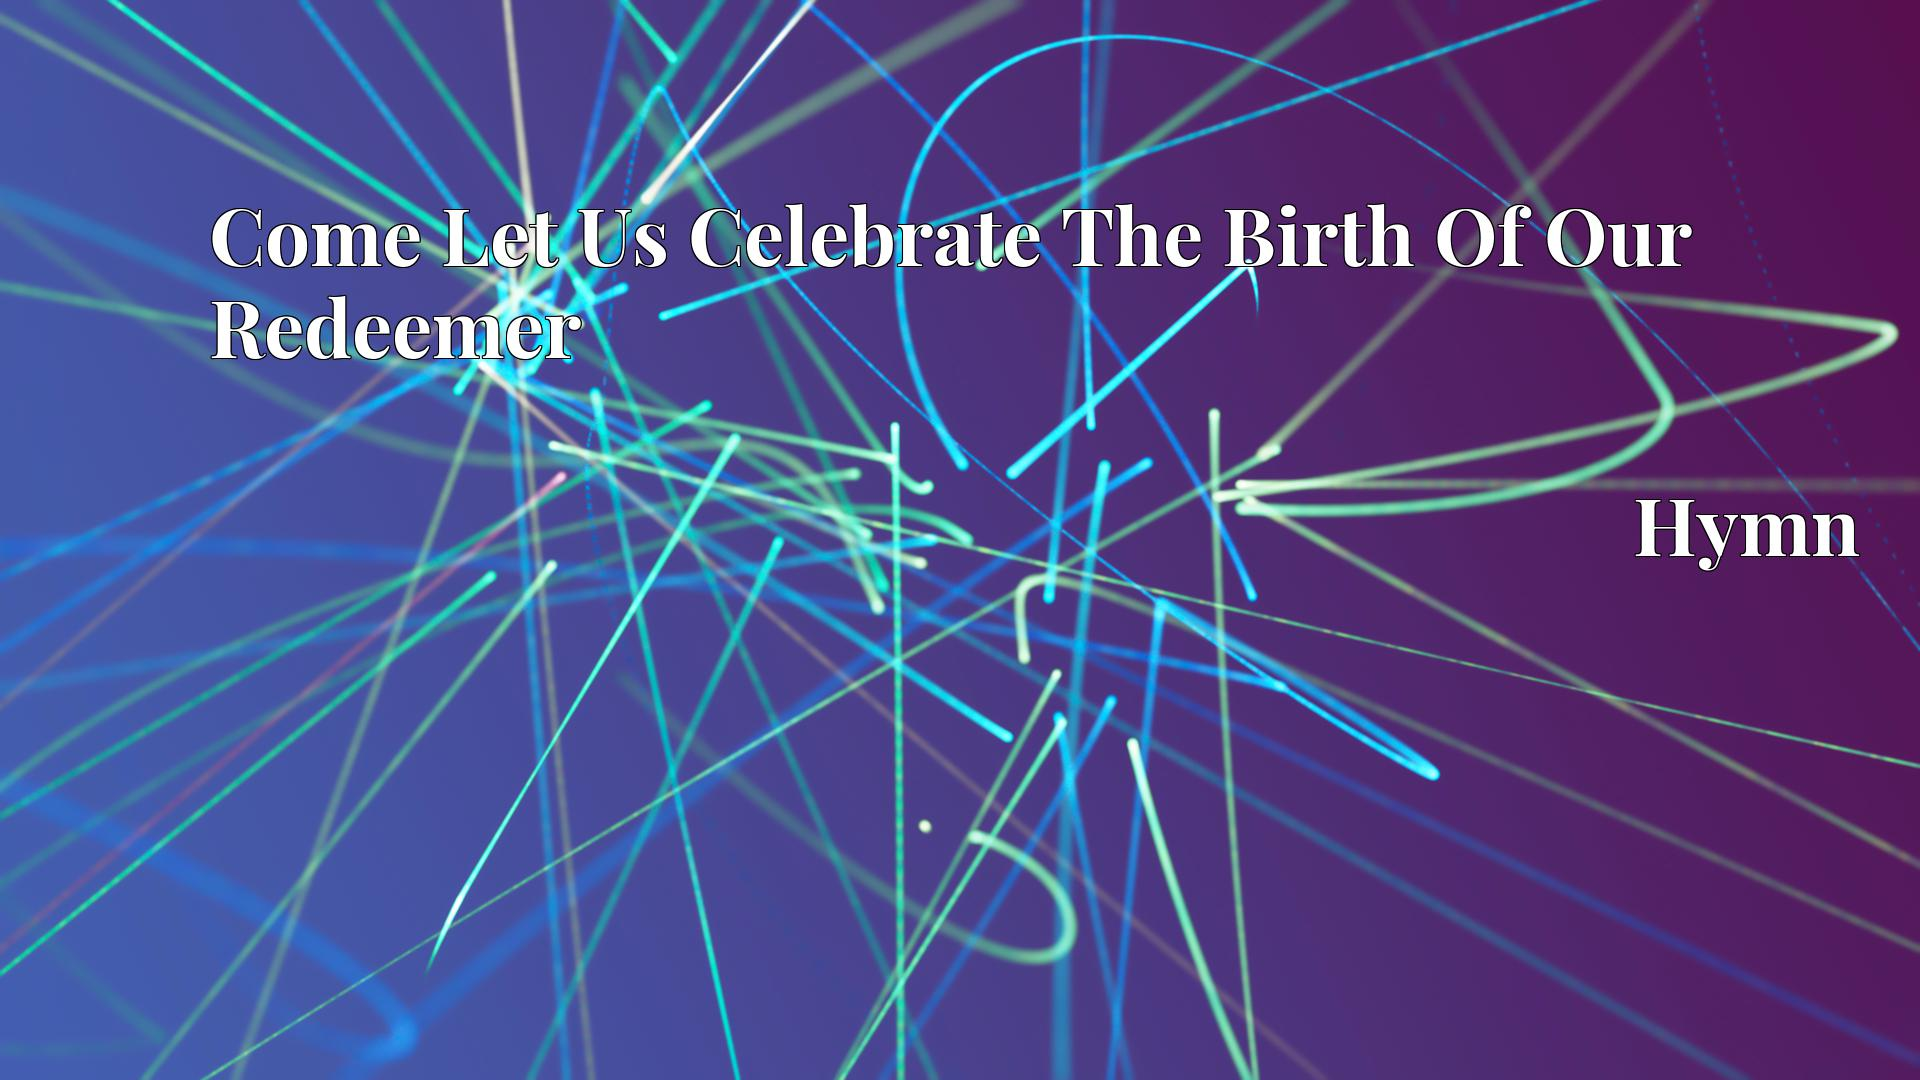 Come Let Us Celebrate The Birth Of Our Redeemer - Hymn